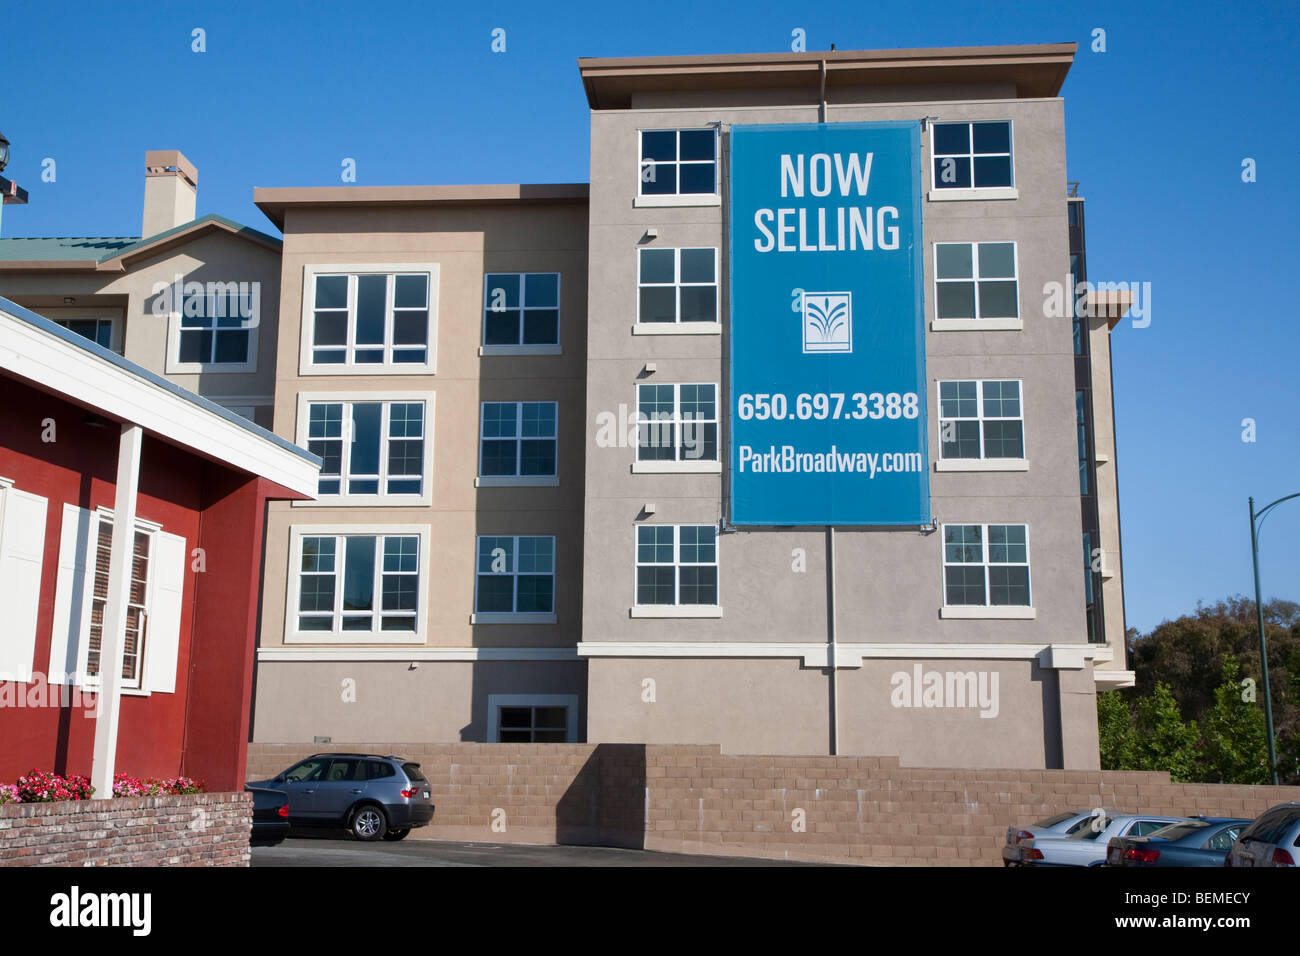 An advertising sign on a mixed used housing development. El Camino Real in Millbrae, CA, USA Stock Photo